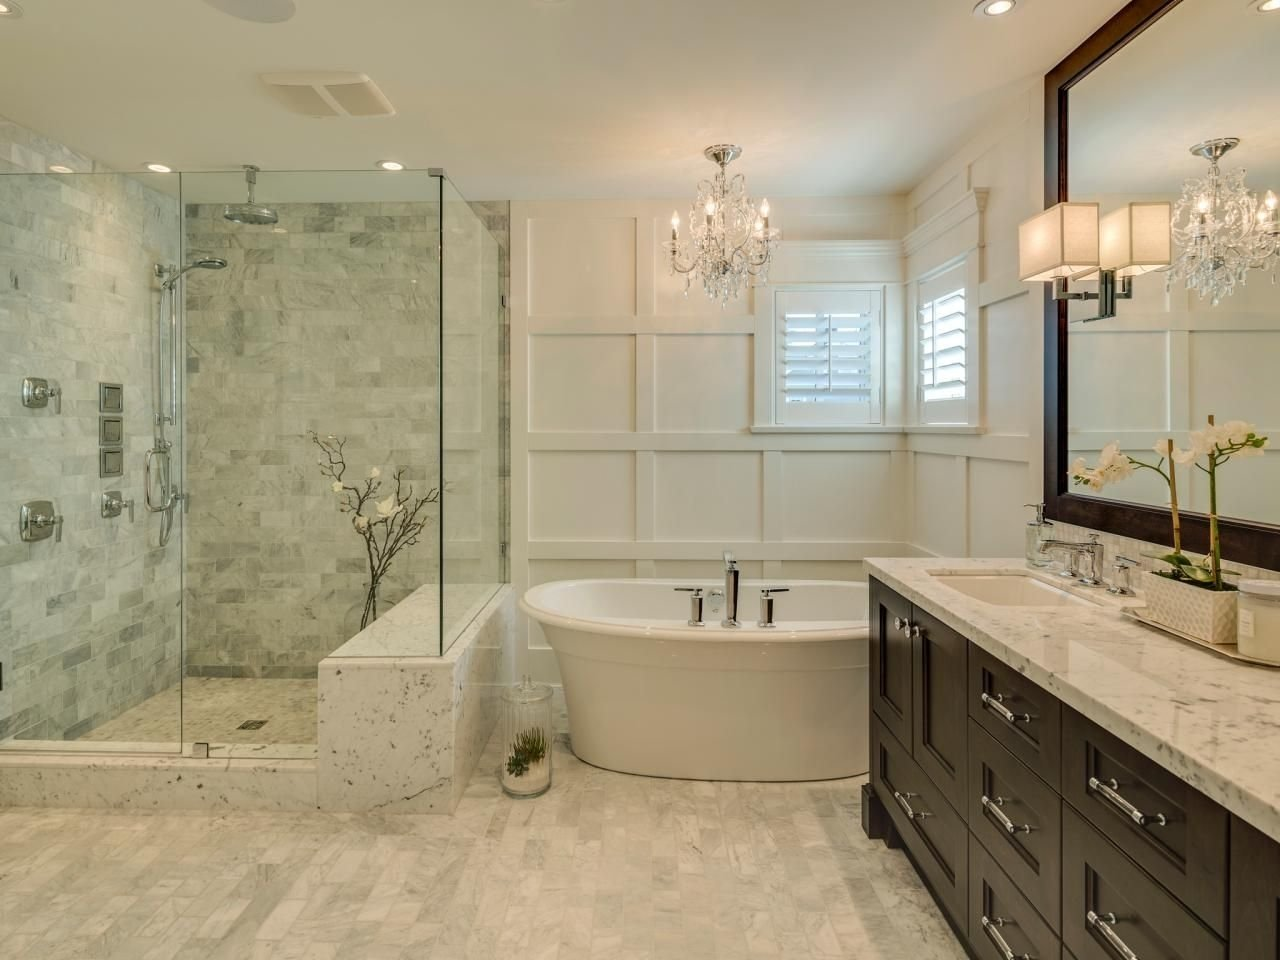 10 Most Recommended Master Bathroom Ideas Photo Gallery splurge or save 16 gorgeous bath updates for any budget budget